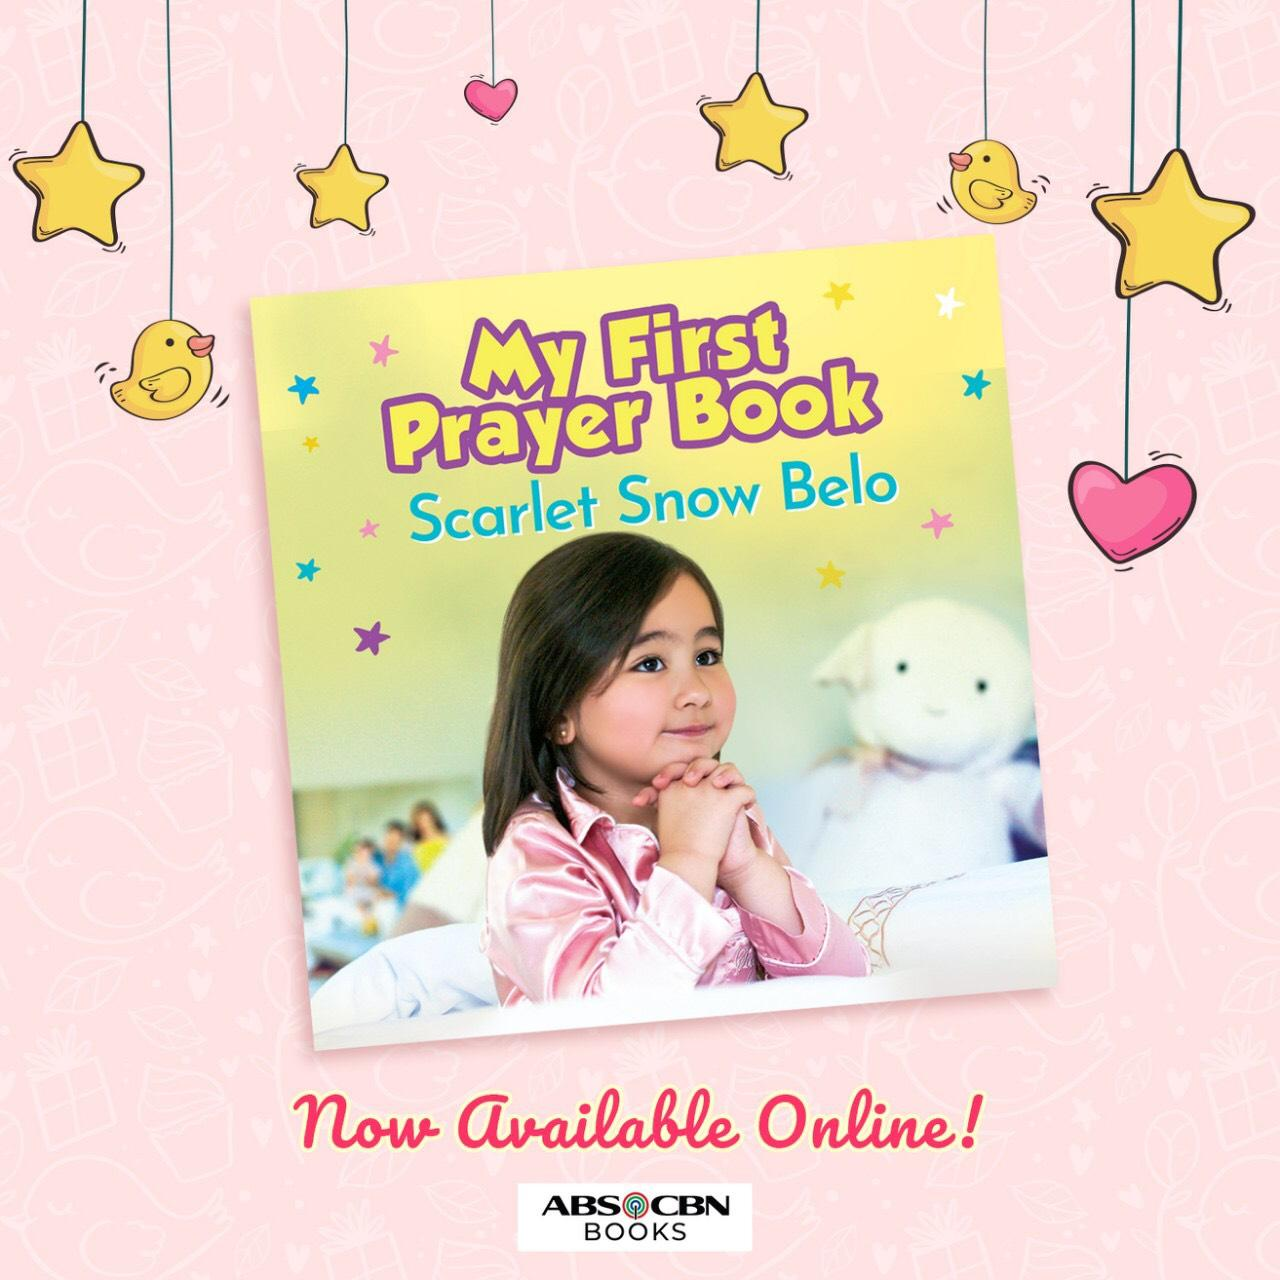 My First Prayer Book By Scarlet Snow Belo By Abs-Cbn Publishing, Inc..